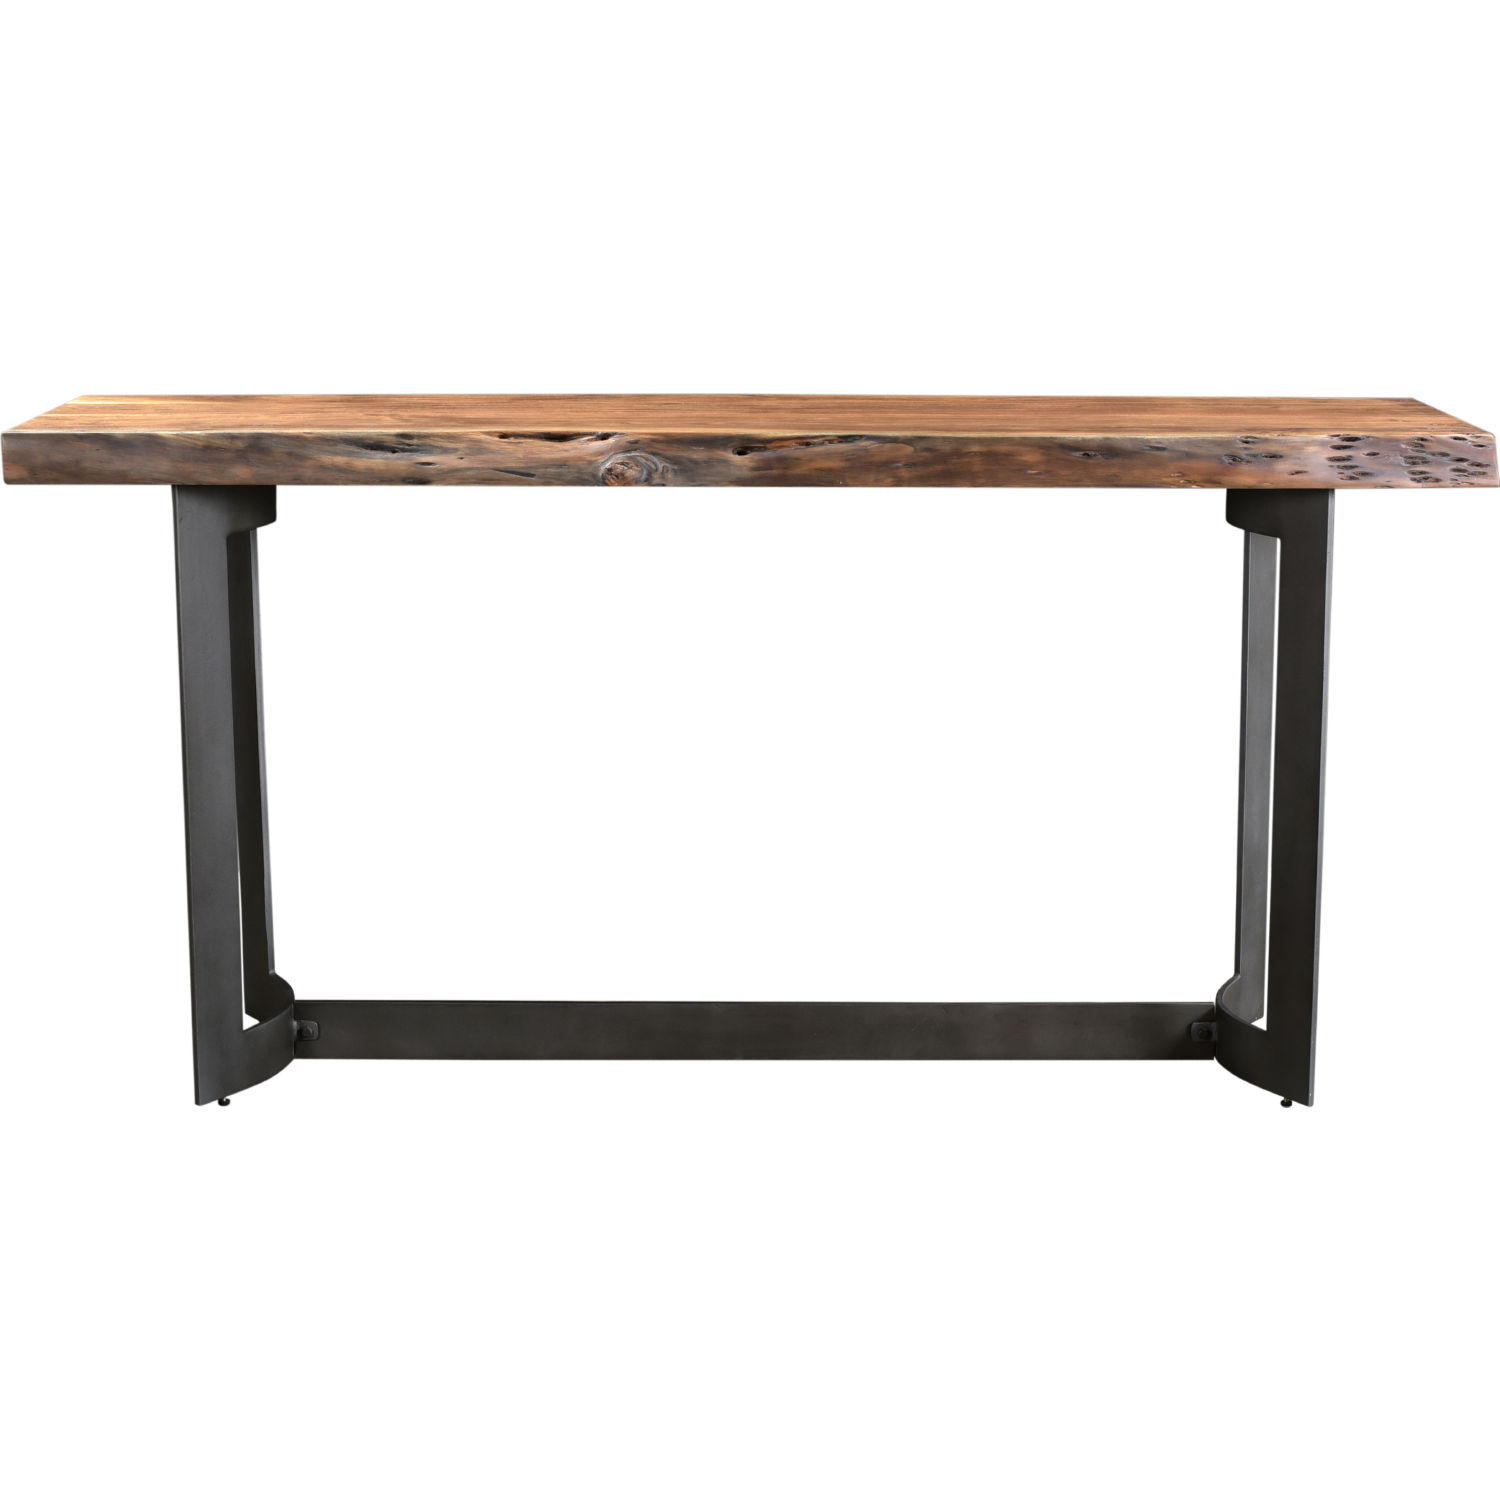 Pleasing Bent Console Table In Smoked Acacia On Iron By Moes Home Collection Caraccident5 Cool Chair Designs And Ideas Caraccident5Info